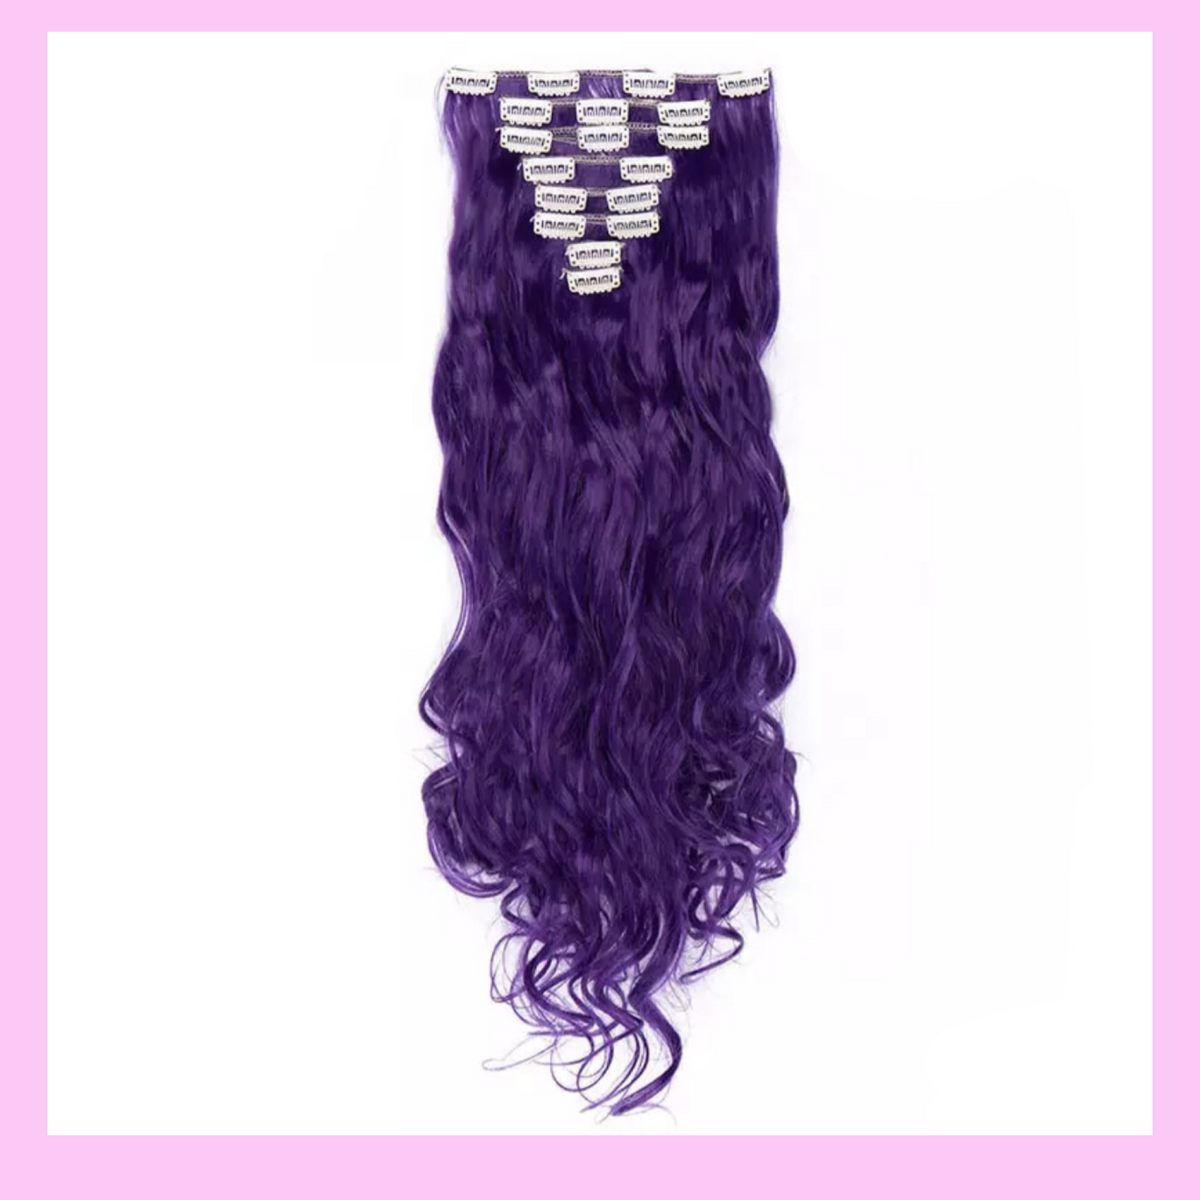 Clip In Hair Extensions Purple Curls Lexi Noel Beauty - lexinoelbeauty.com